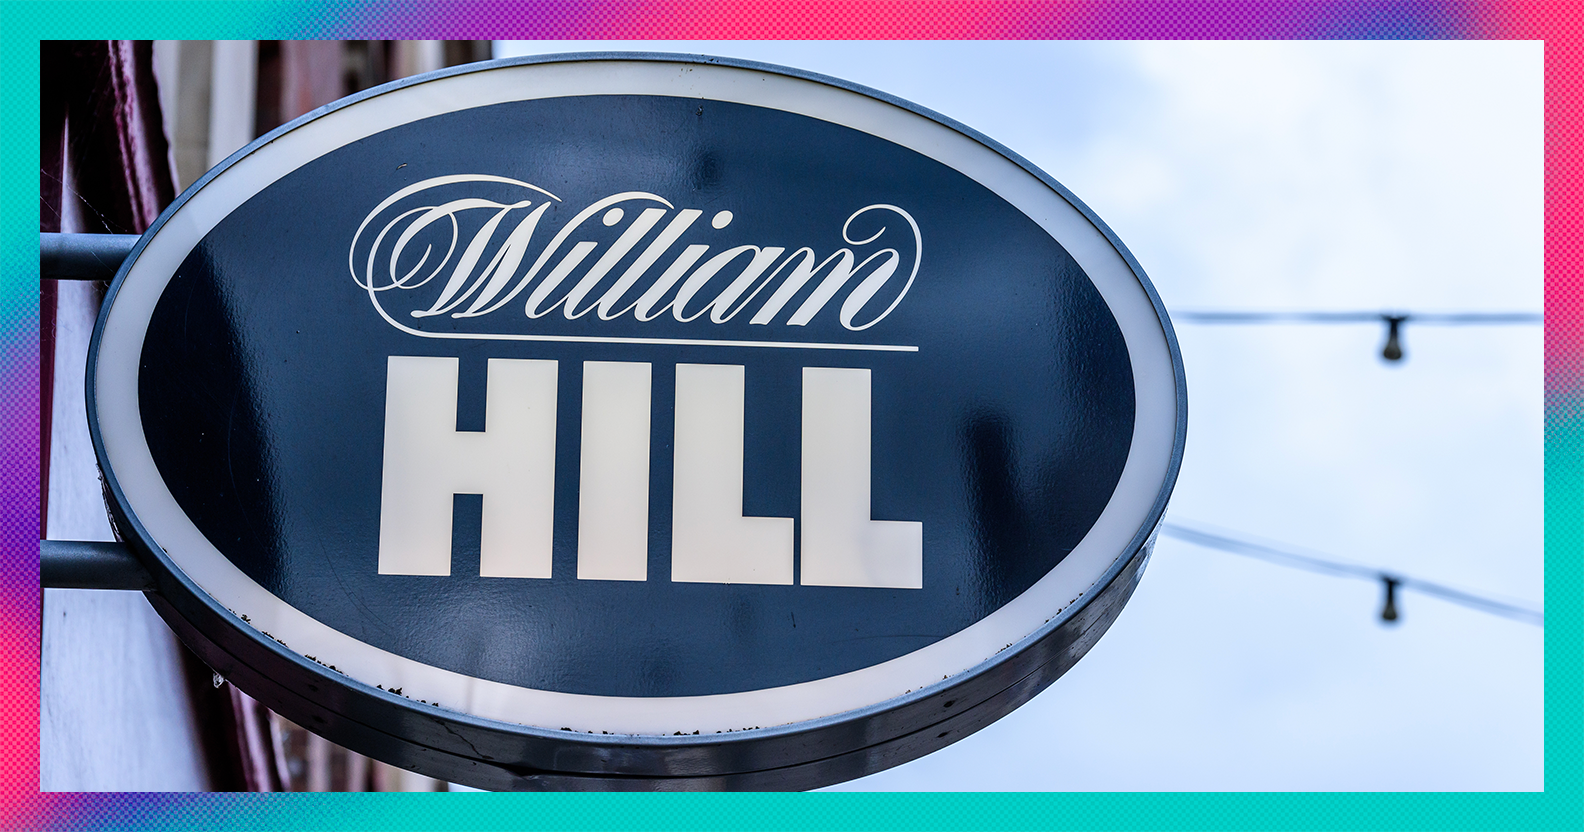 William Hill: Done and Done